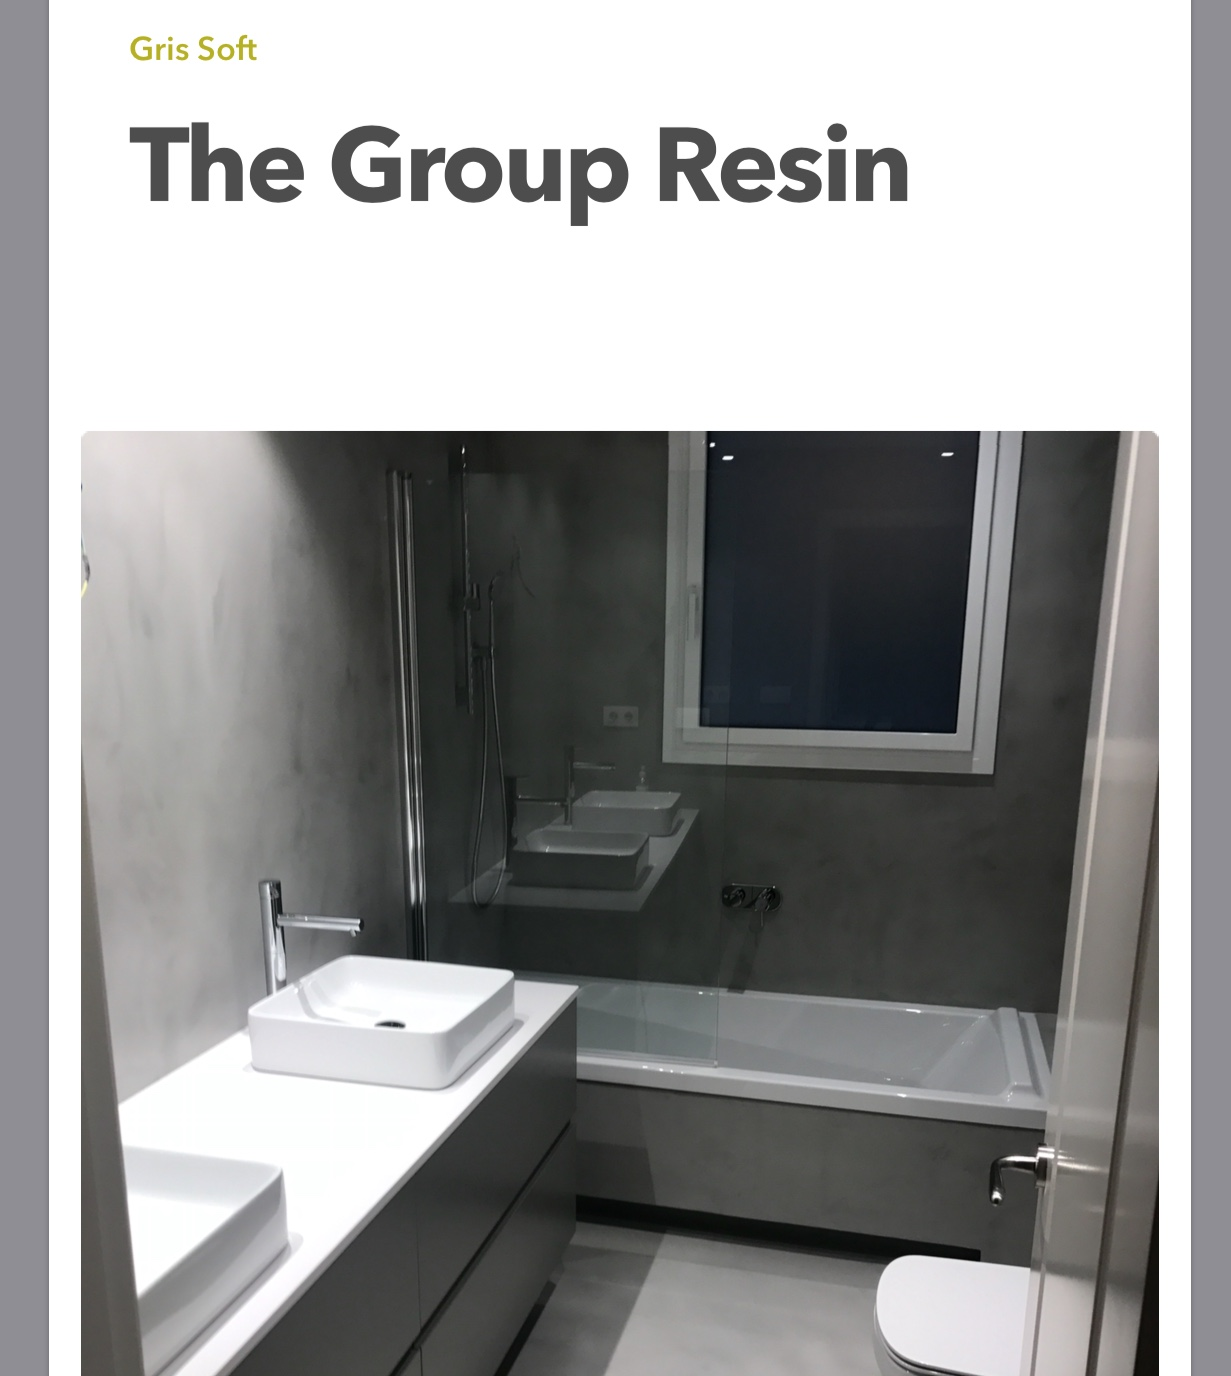 THE GROUP RESIN